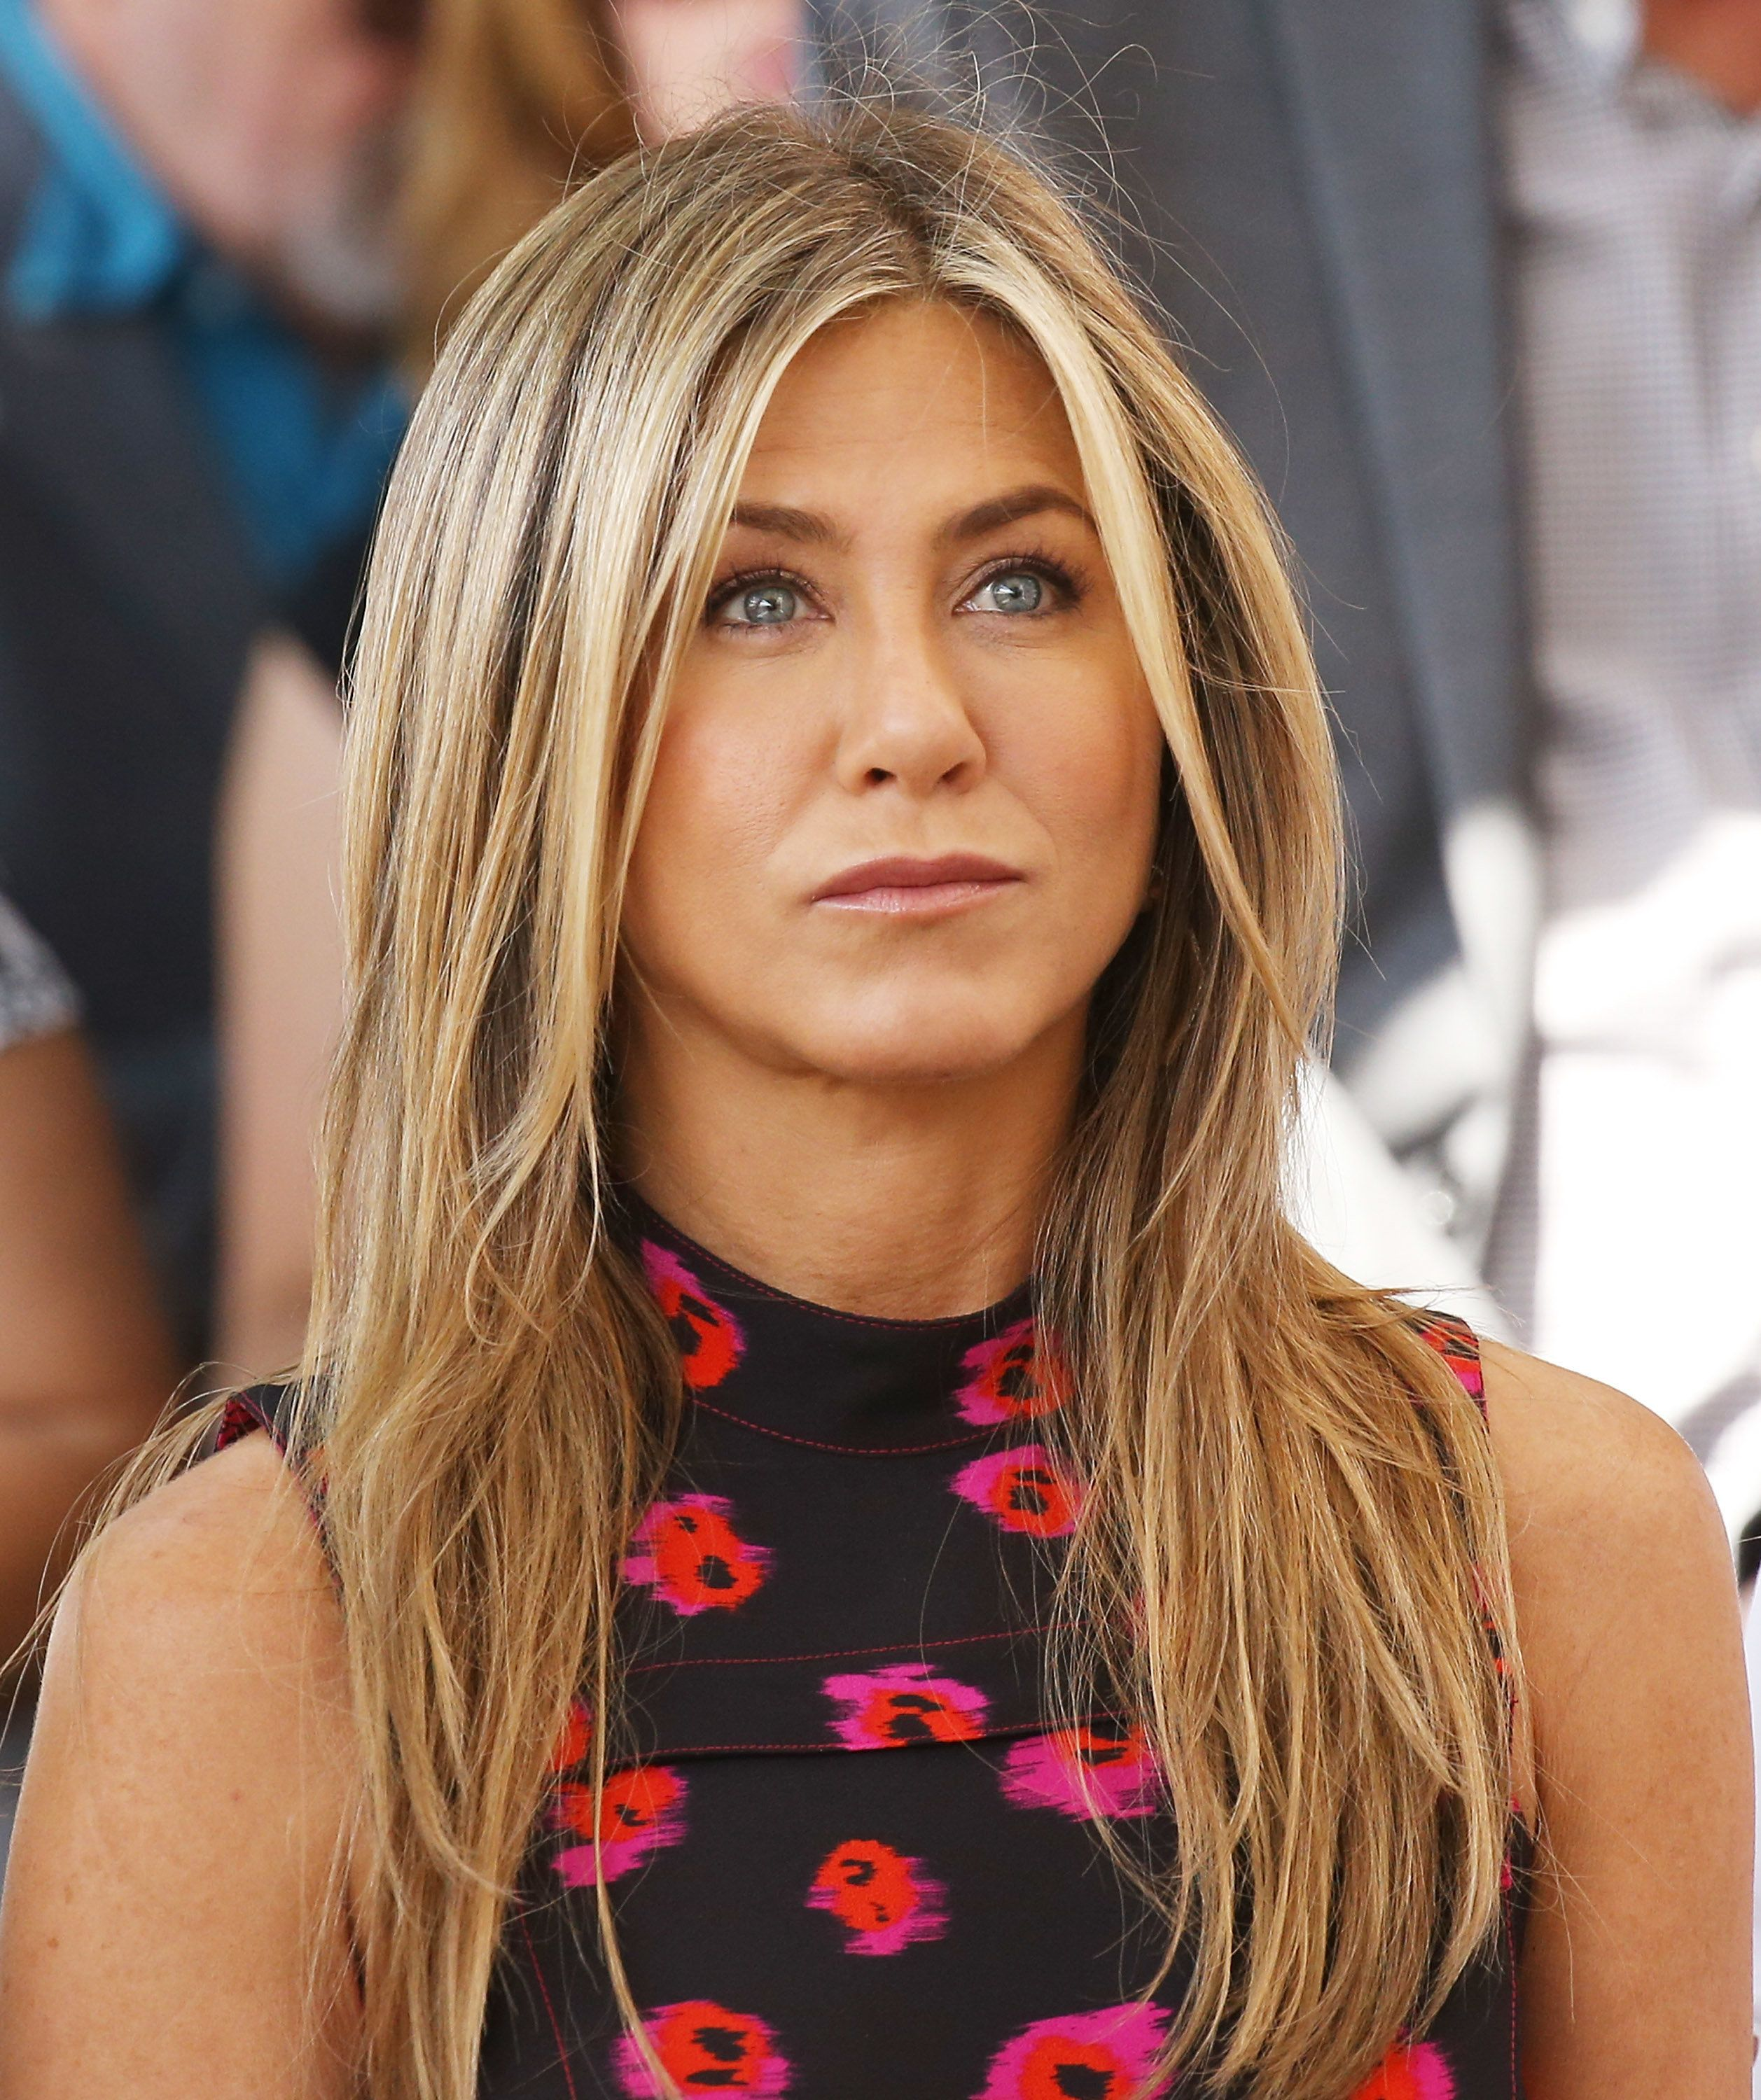 Jennifer Aniston first appeared after an angry article about her non-pregnancy